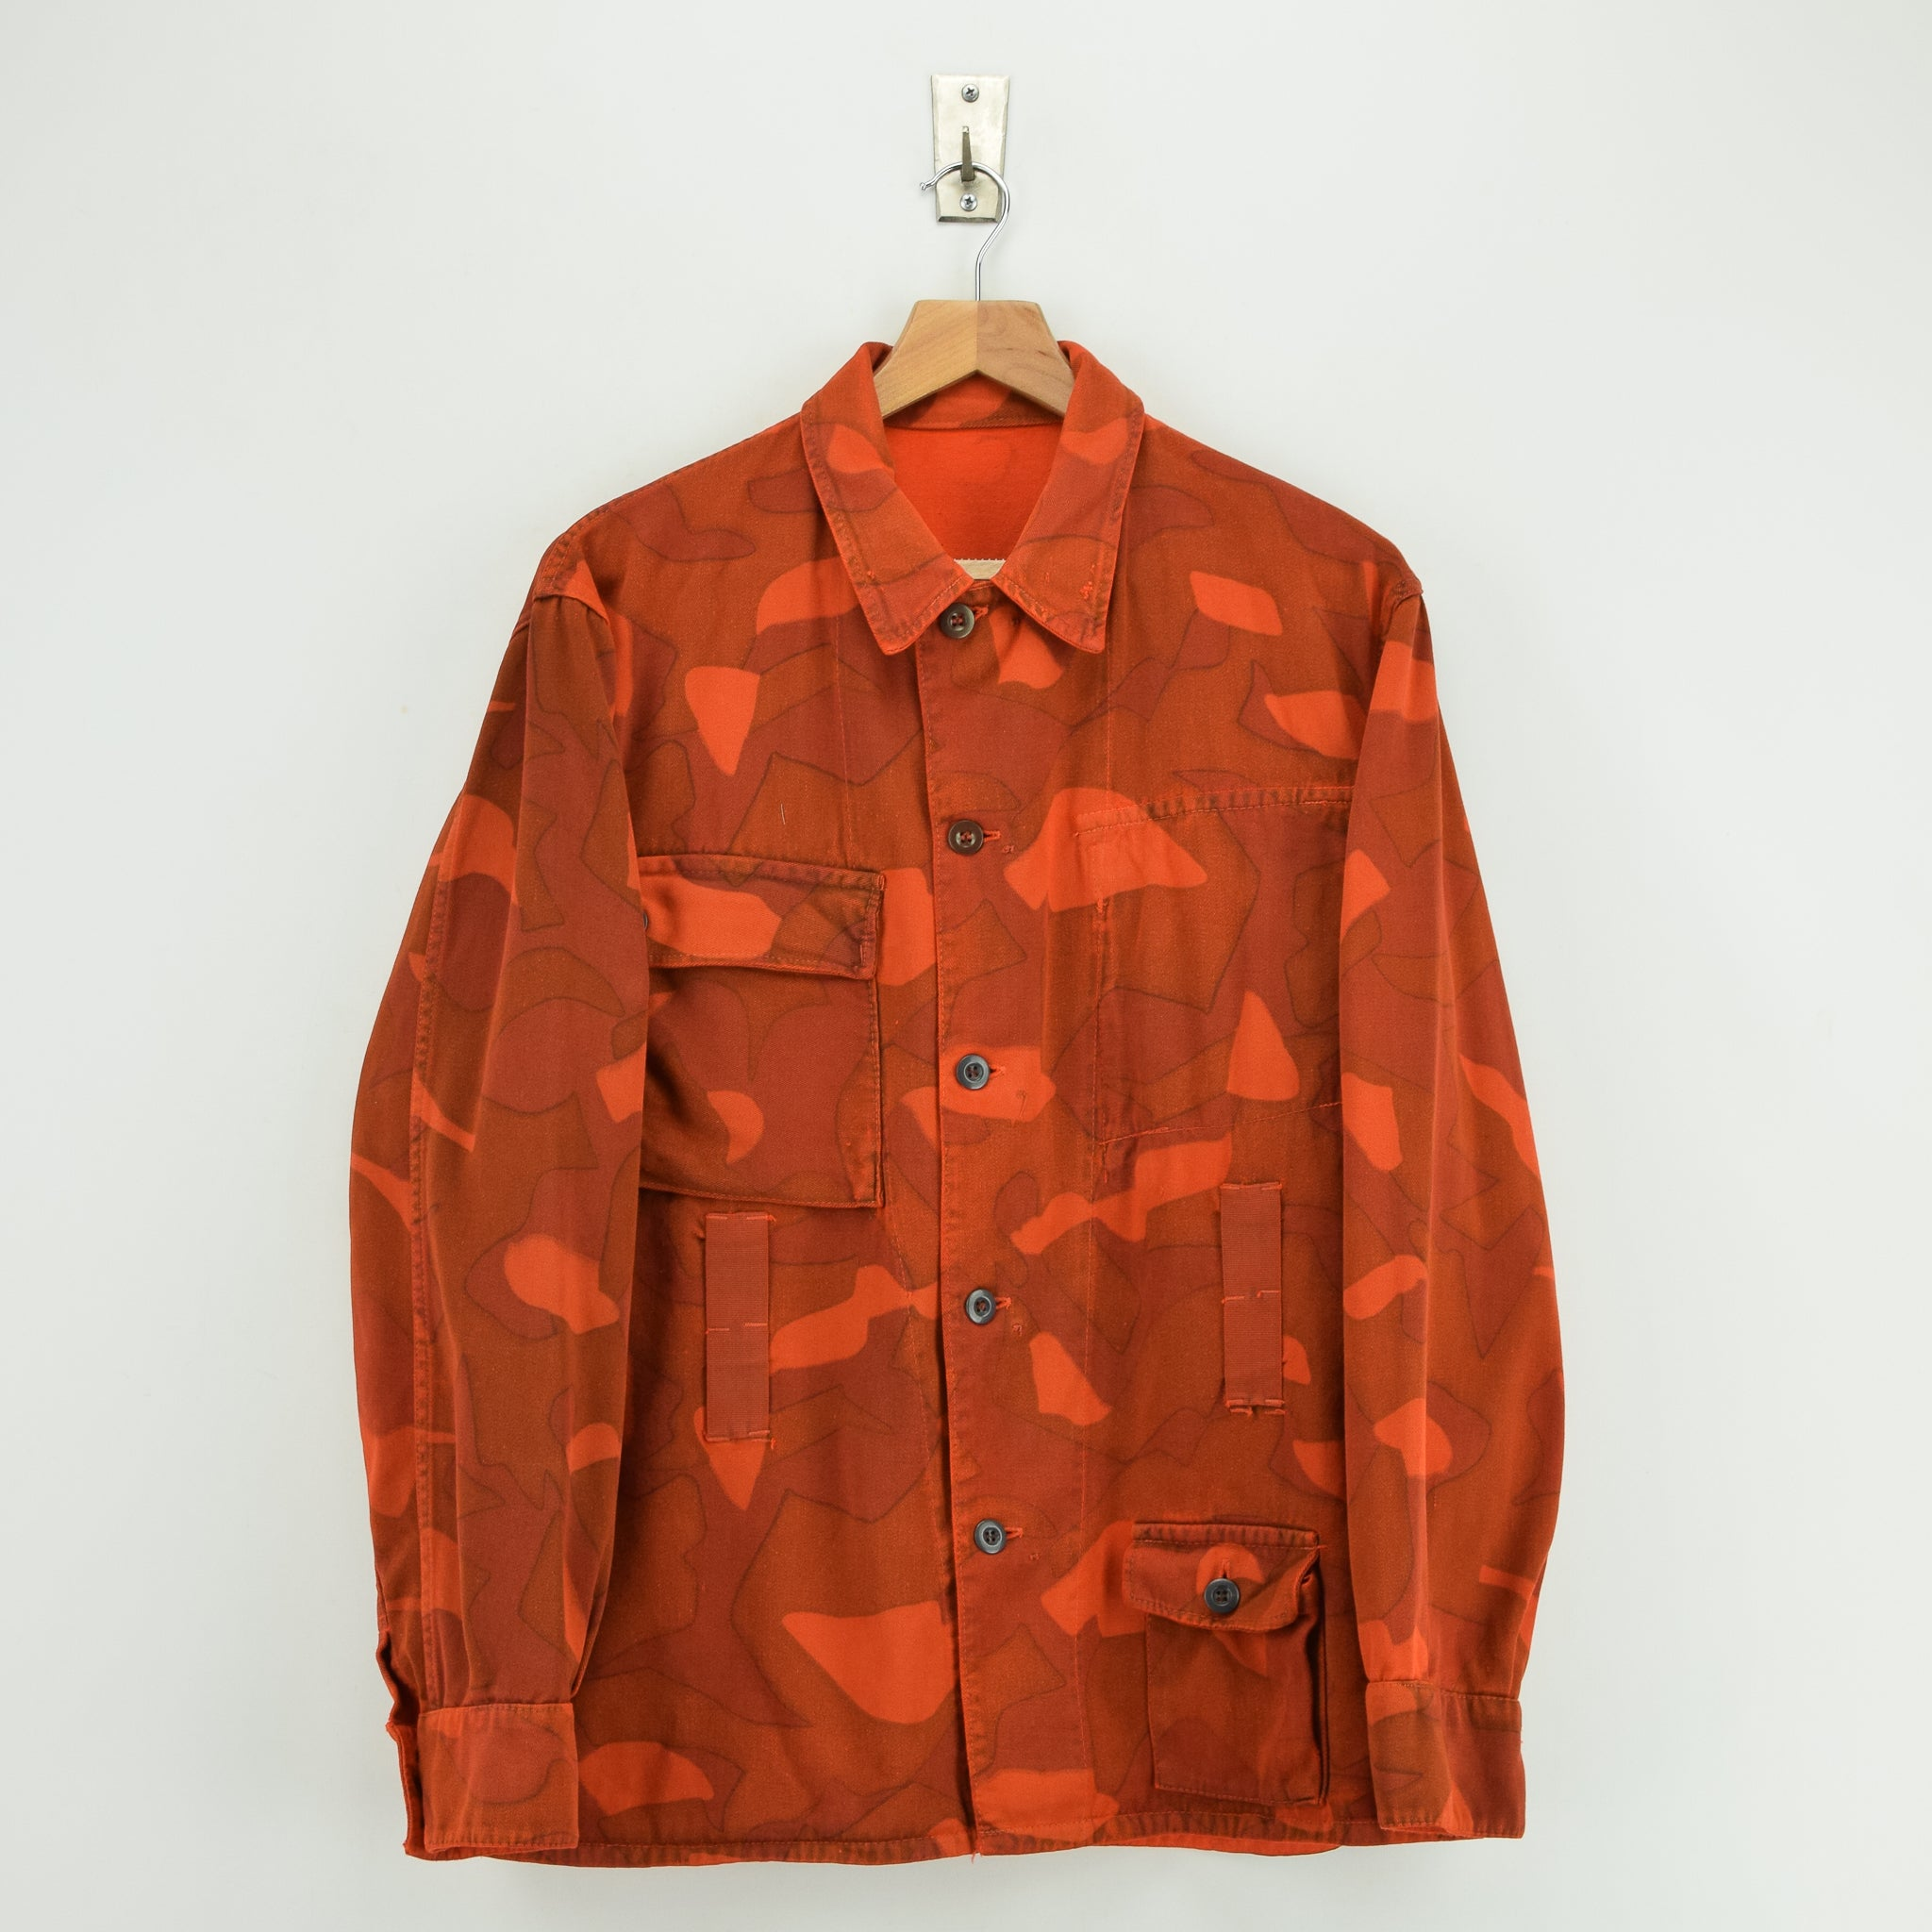 Vintage 60s Military Finnish Army Orange Overdyed Camo Mountain Field Jacket M front